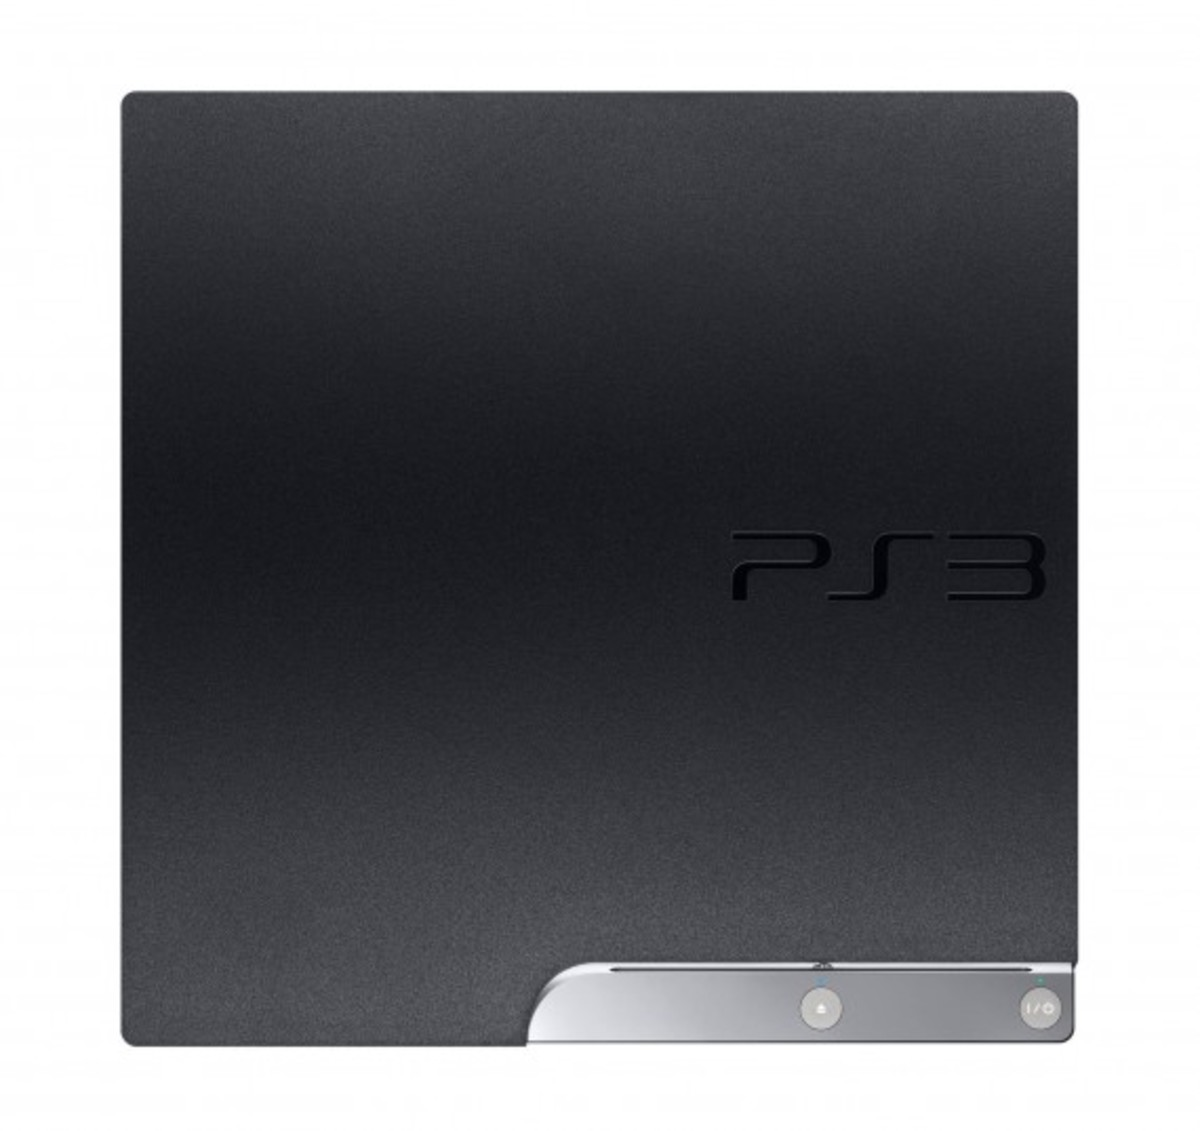 sony-playstation-3-ps3-120gb-slim-02